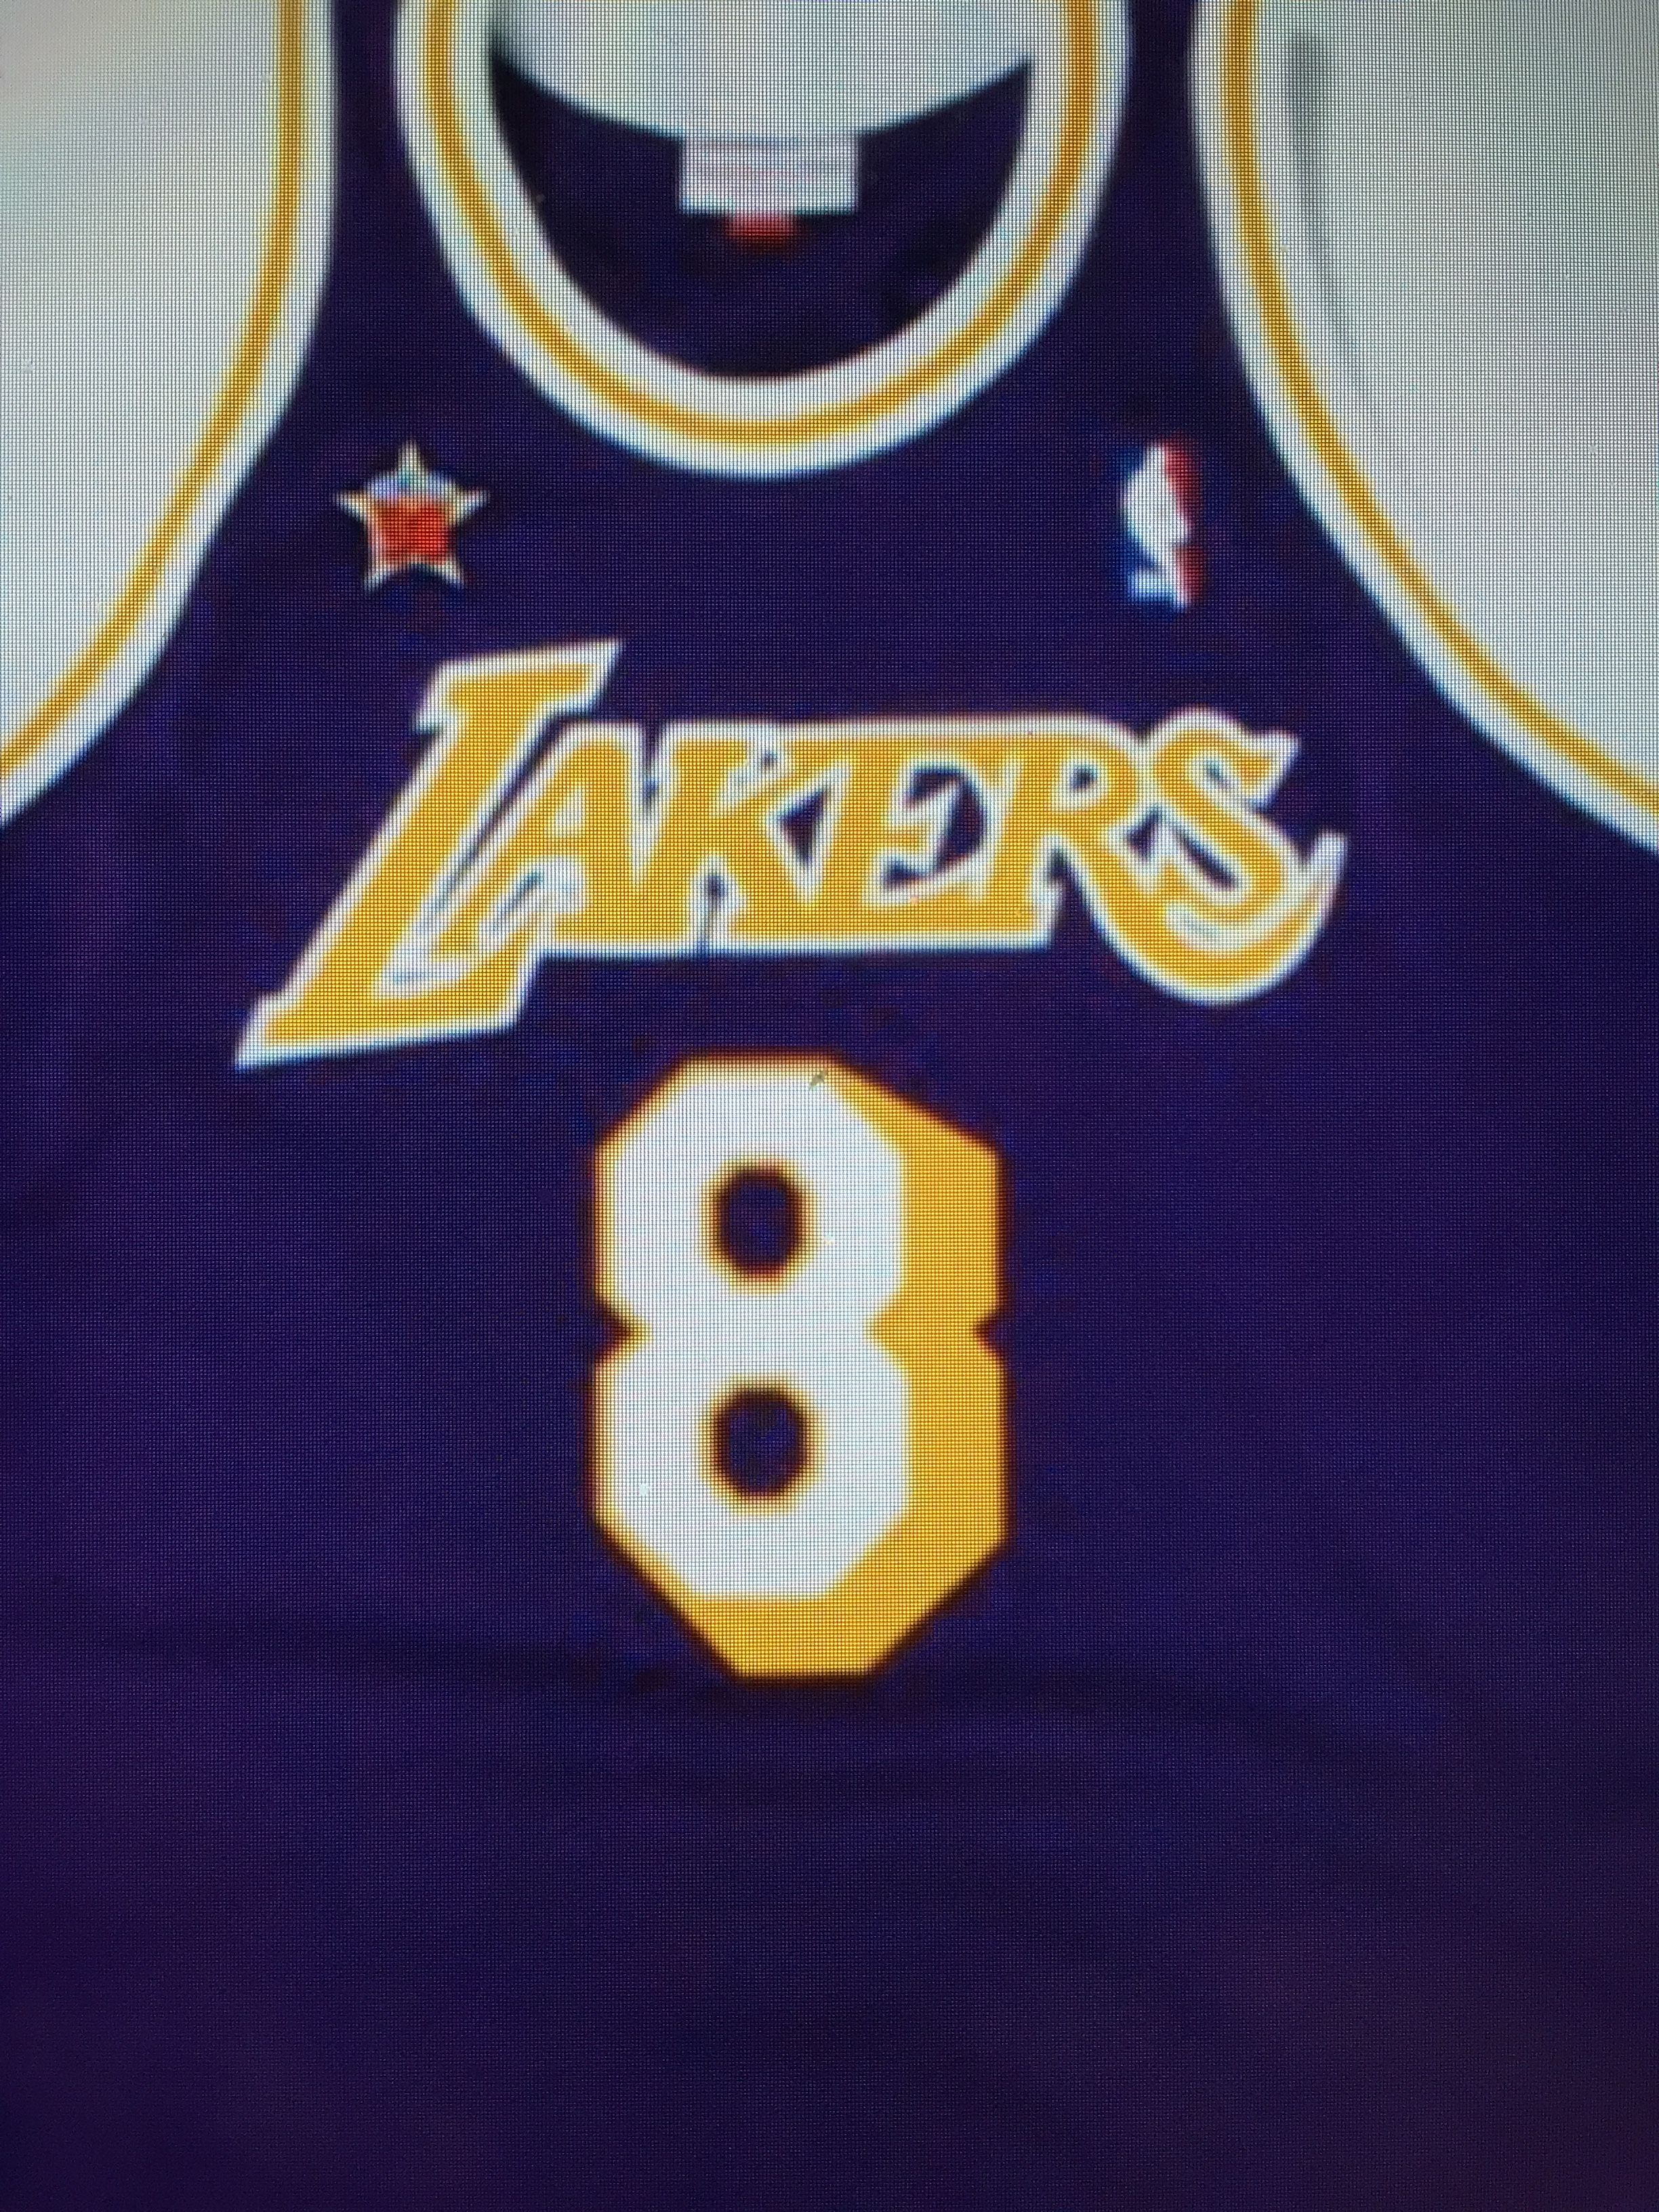 Kobe Bryant 1998 Nba All Star Game Authentic Jersey All Star Kobe Bryant Jersey